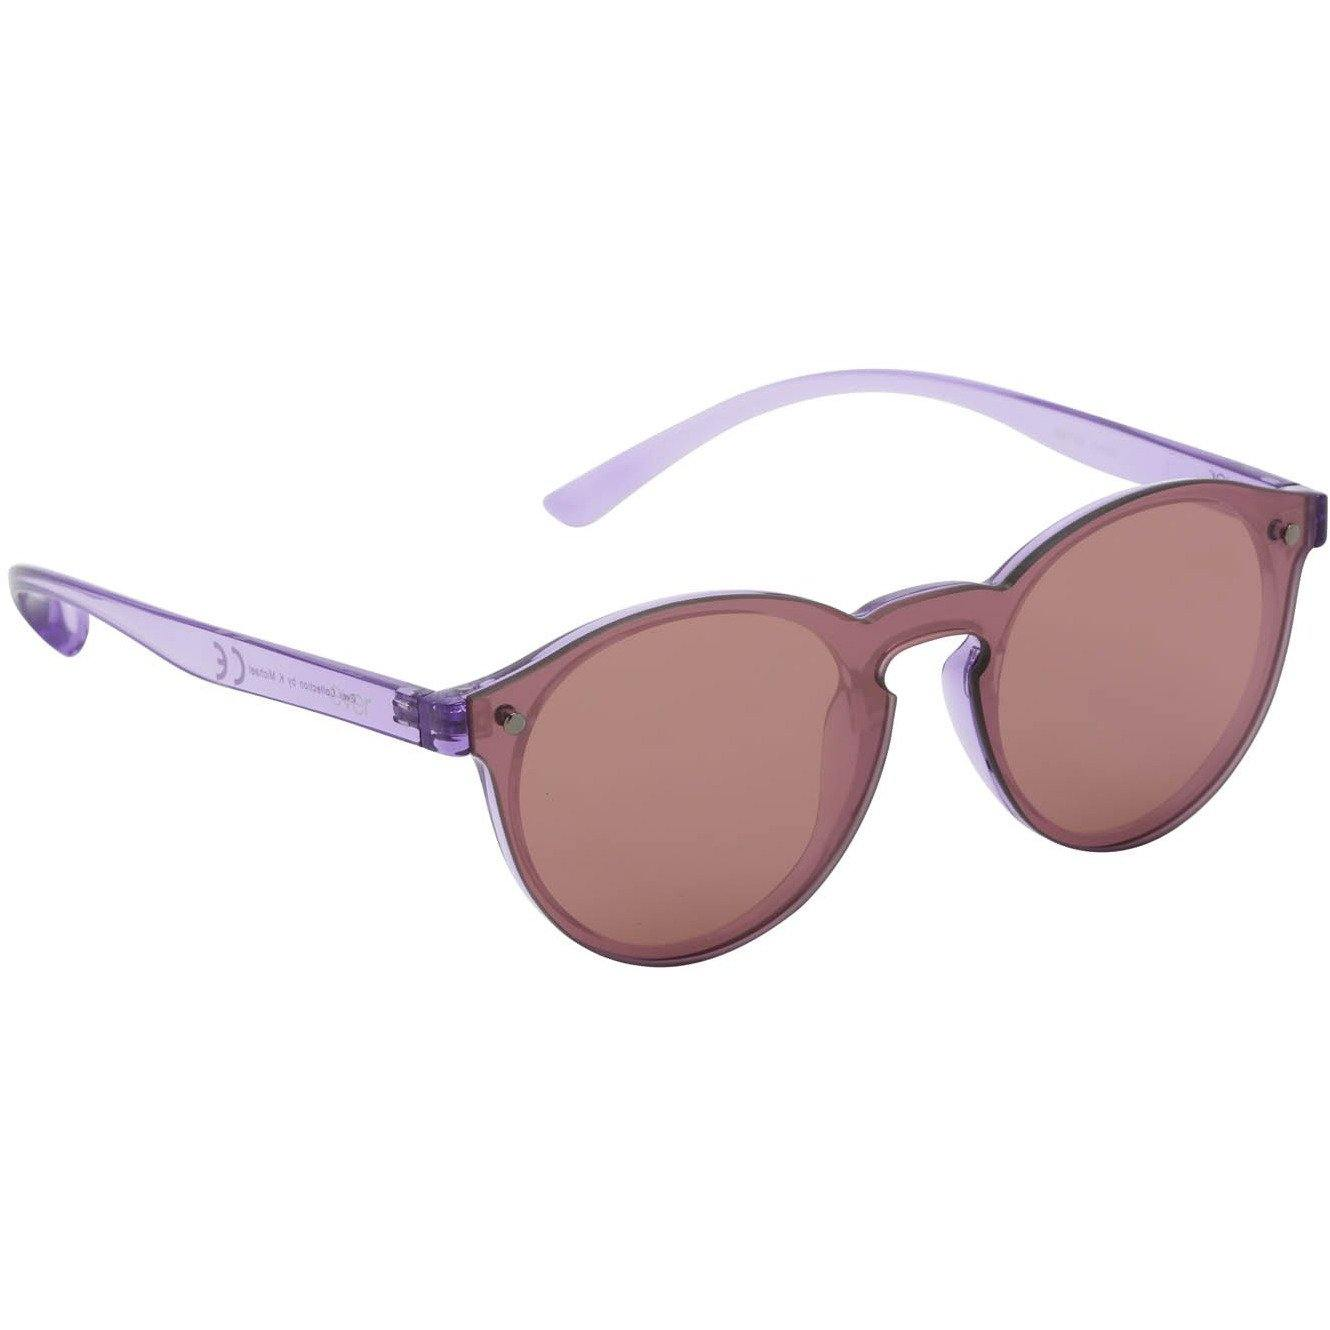 "Revo Coated Collection Designer Sunglasses Model ""Simba Tail"" Purple By: The Ever Collection"